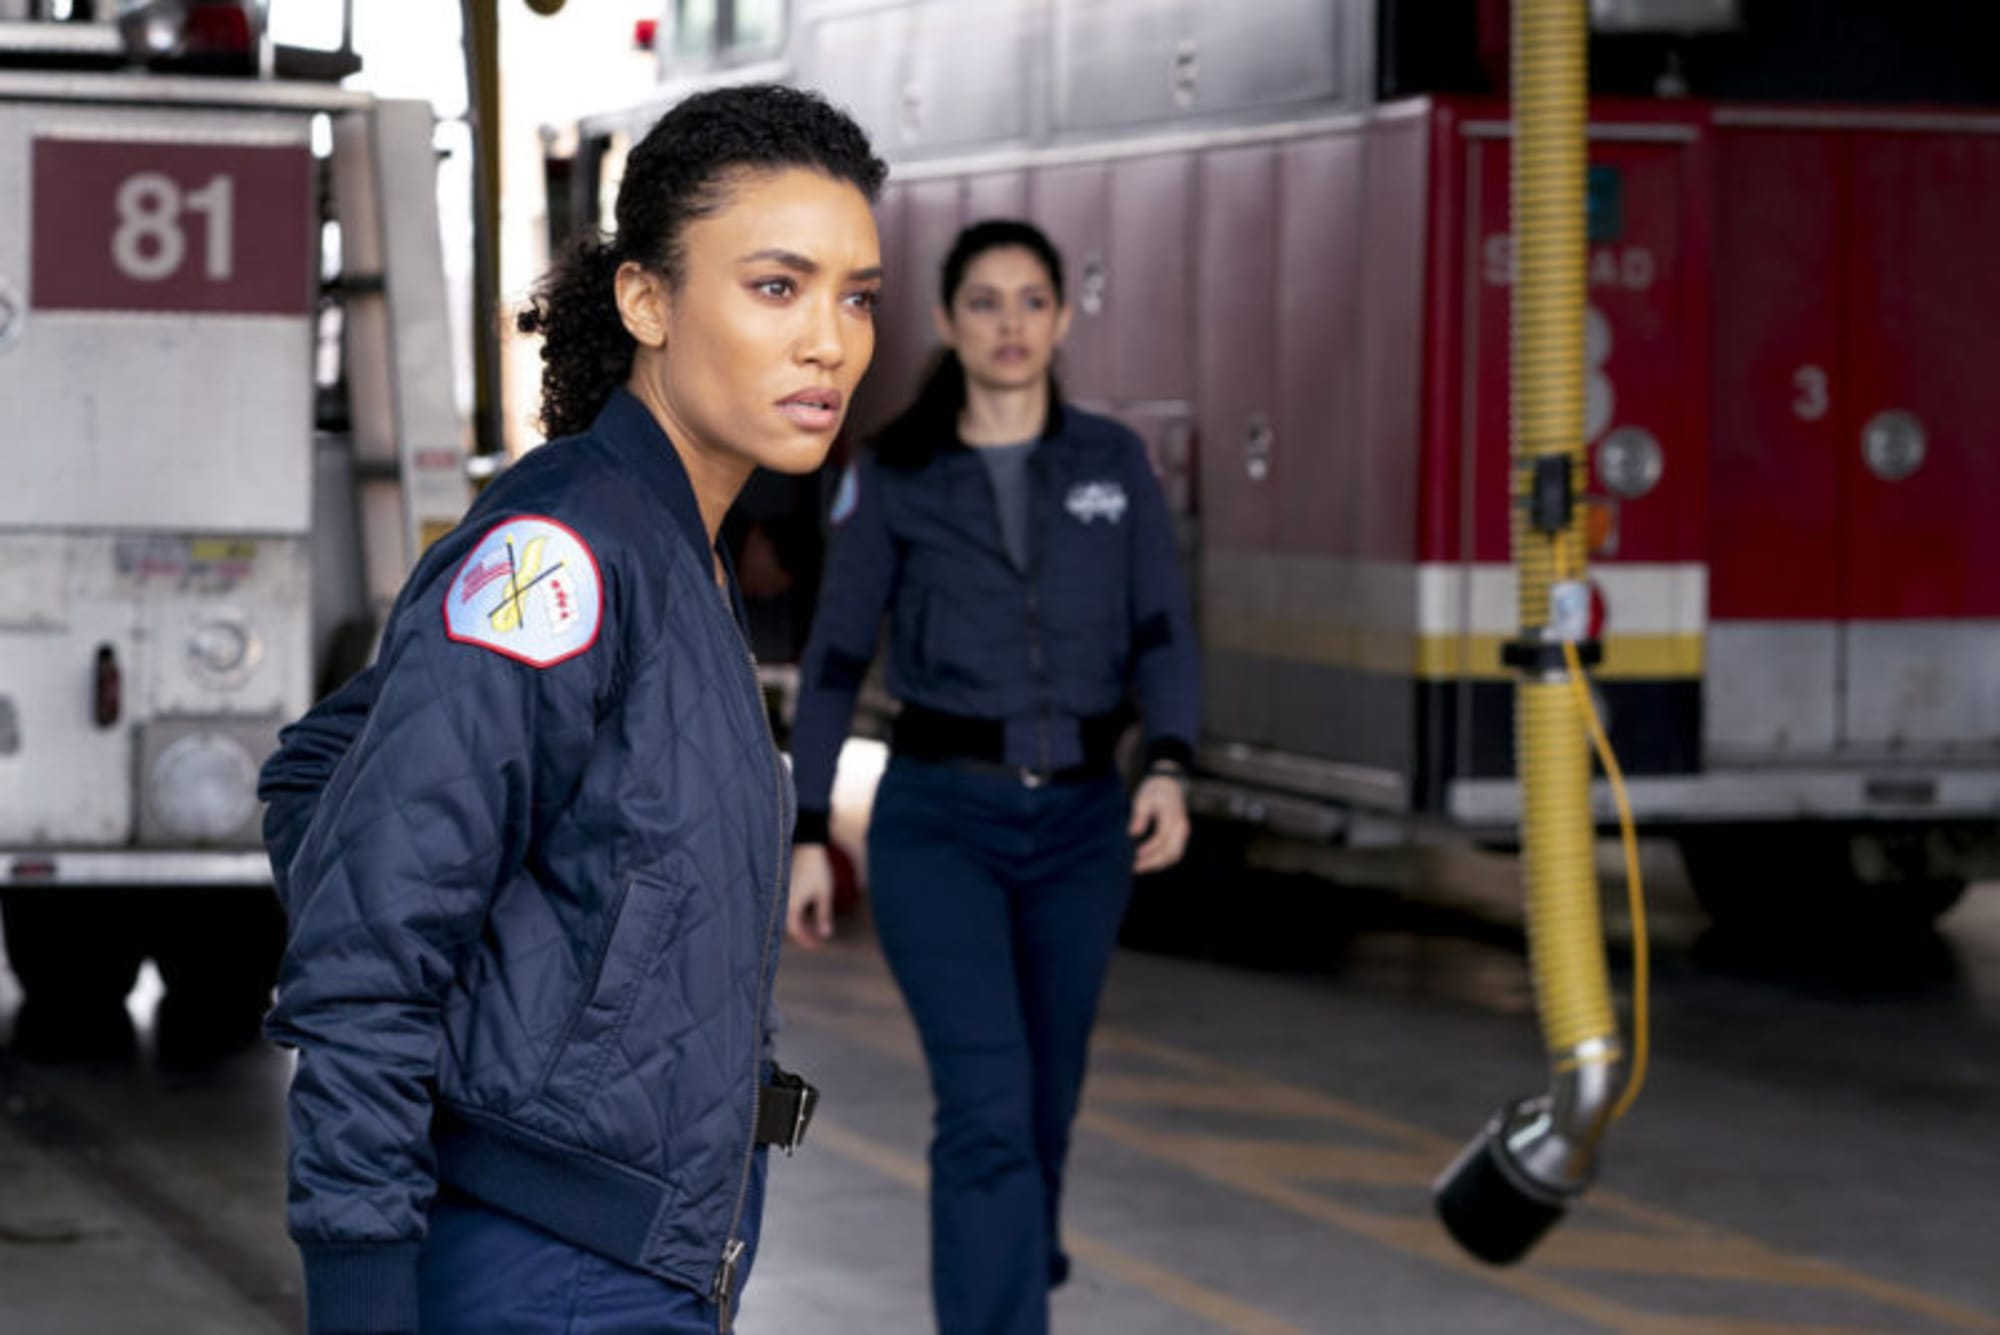 Chicago Fire season 7 character review: Emily Foster - Page 3